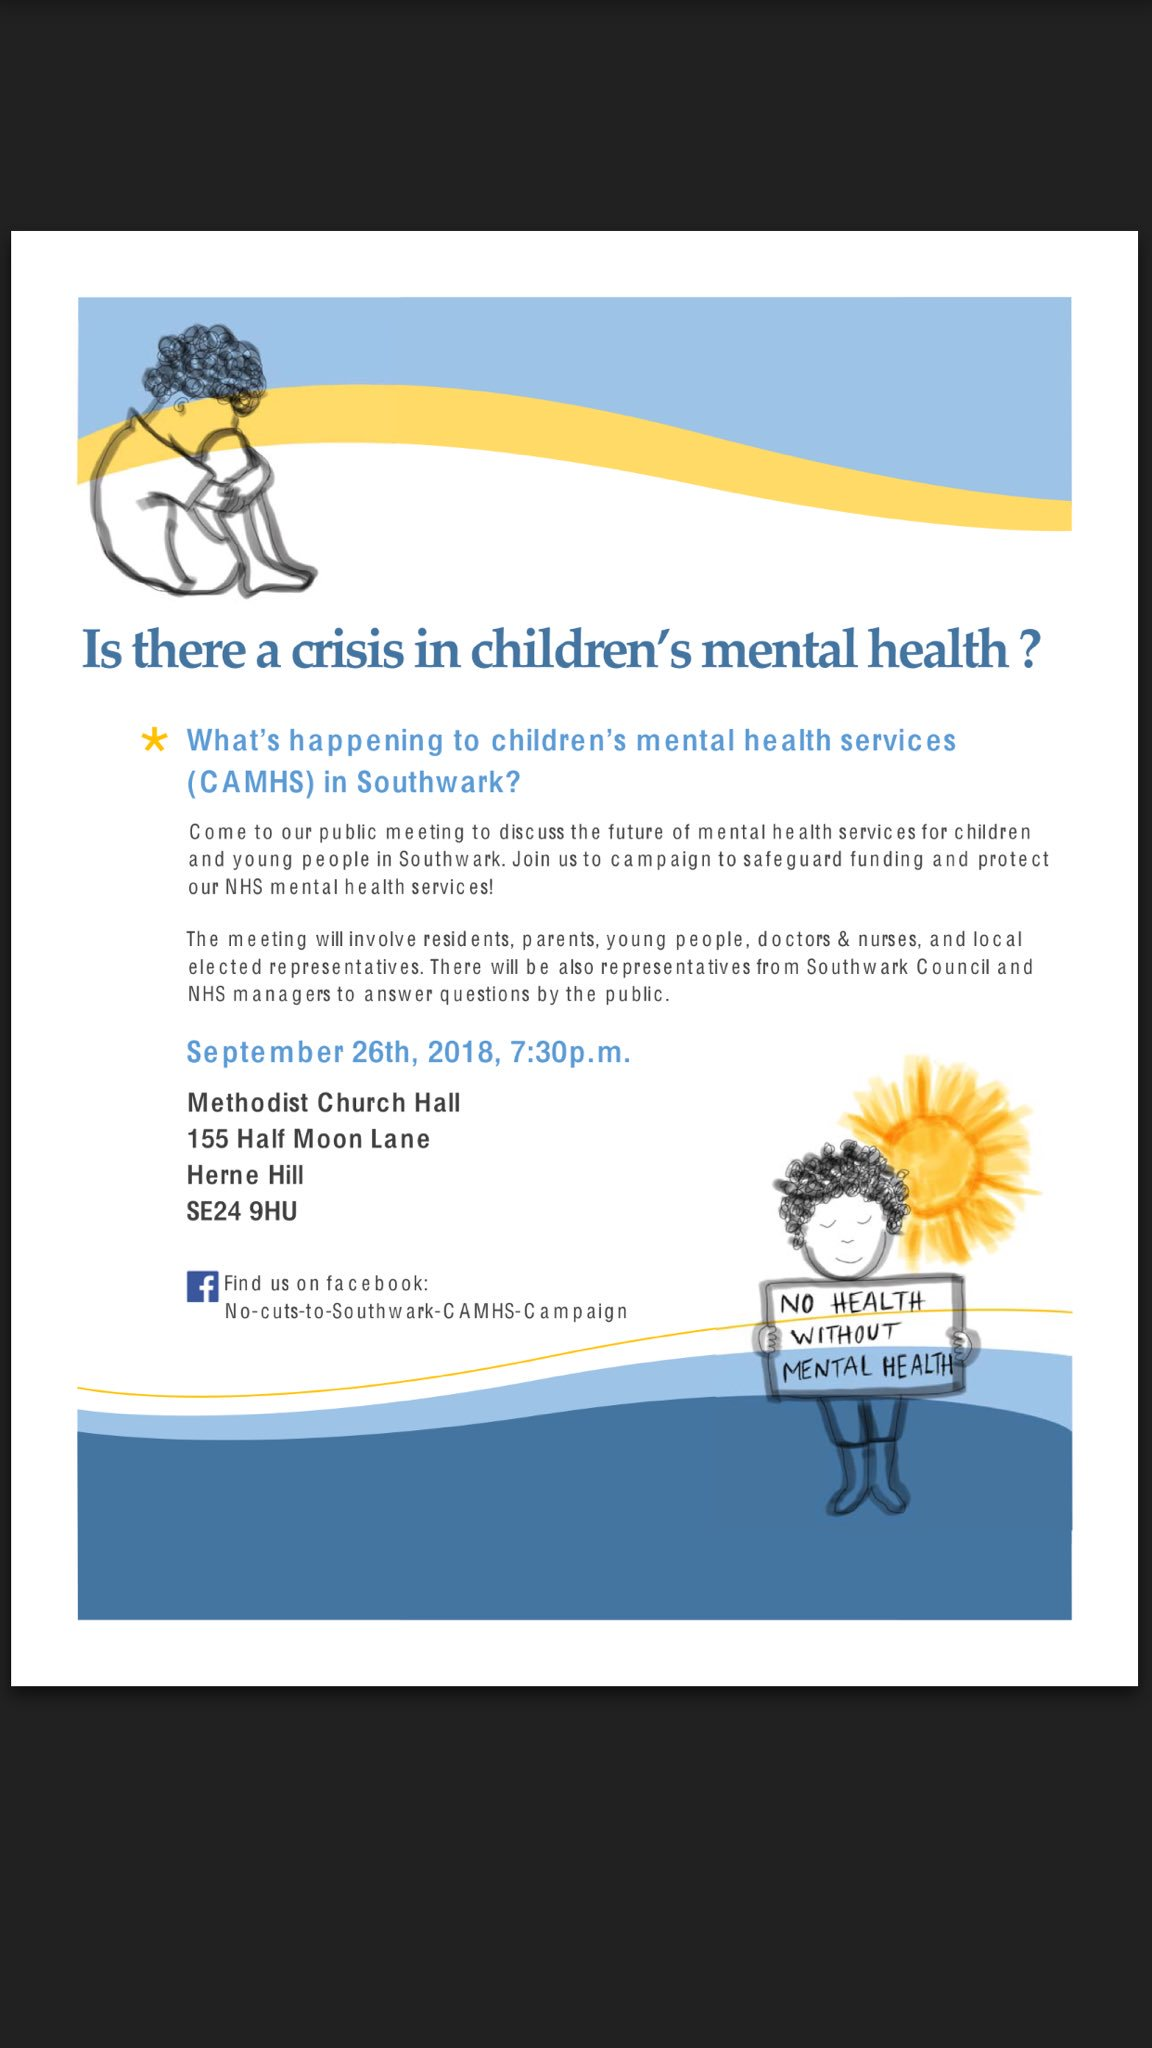 Is there a Mental Health Crisis? - Southwark CAN